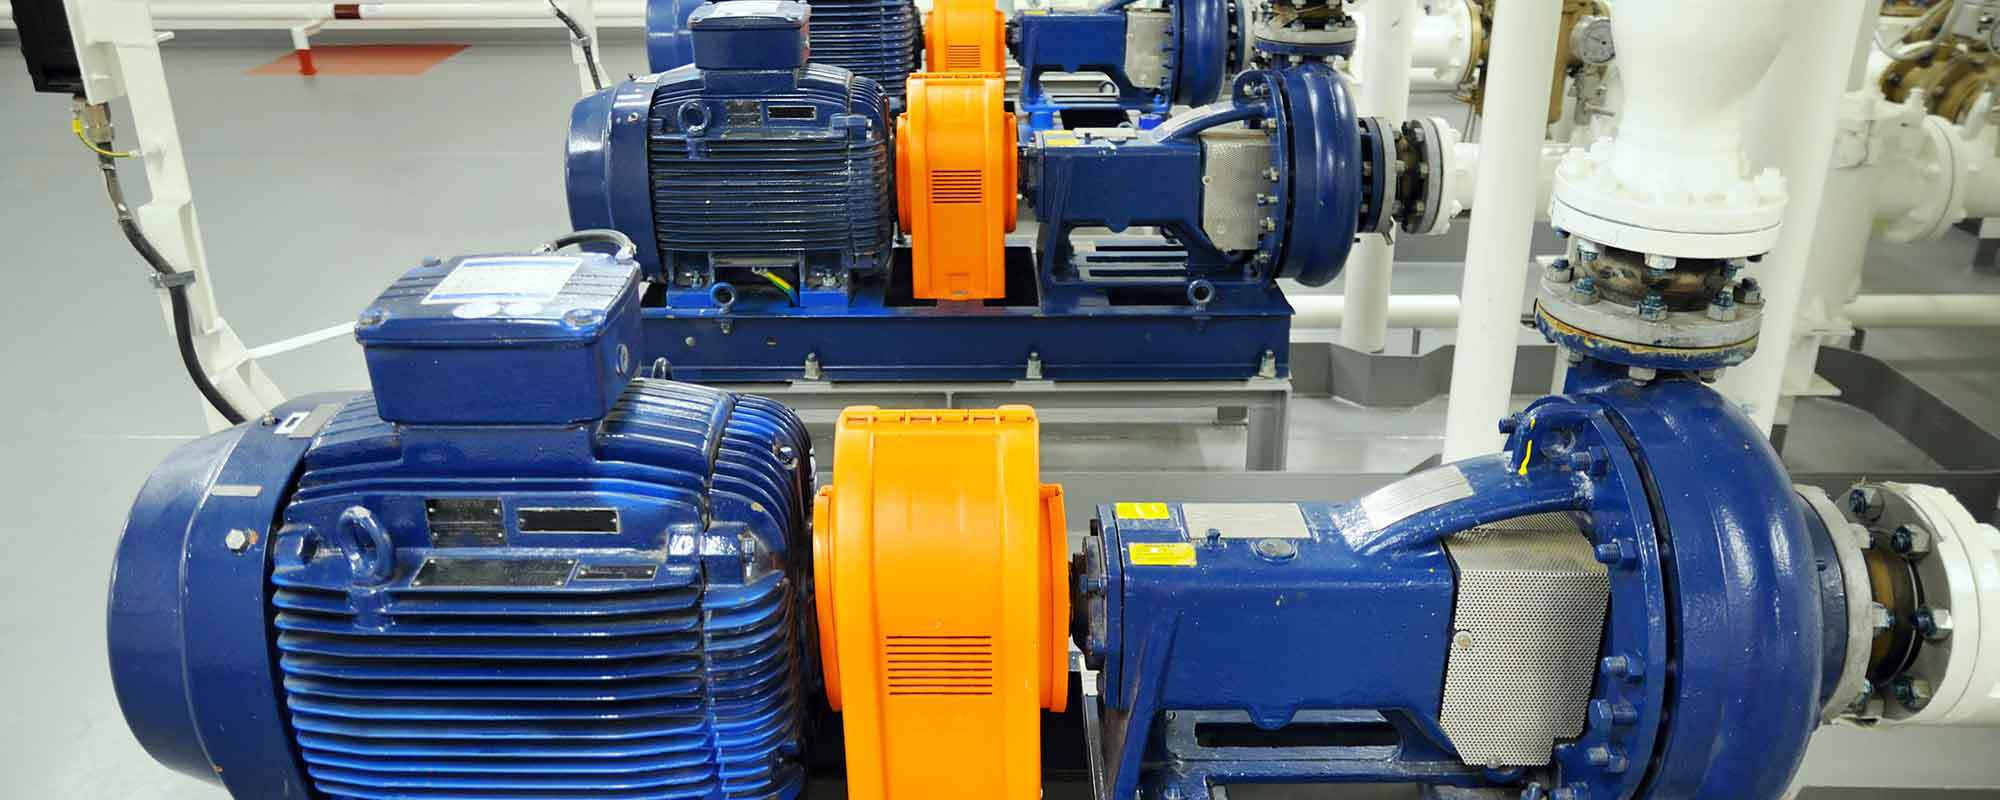 Heavy industrial pumps provided by WAPSA